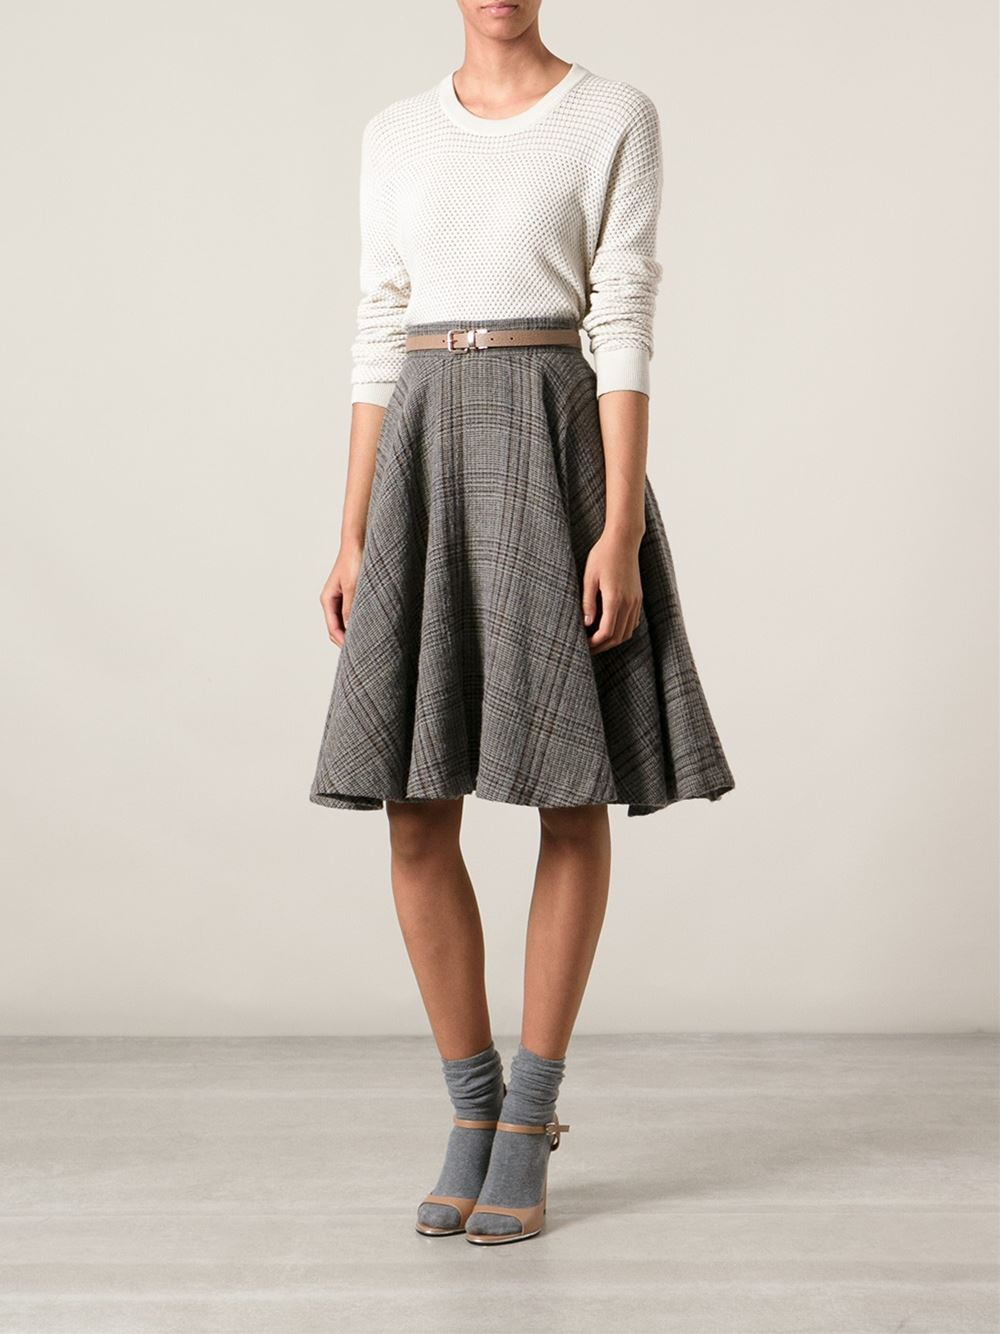 Erika cavallini semi couture A-Line Plaid Skirt in Gray | Lyst